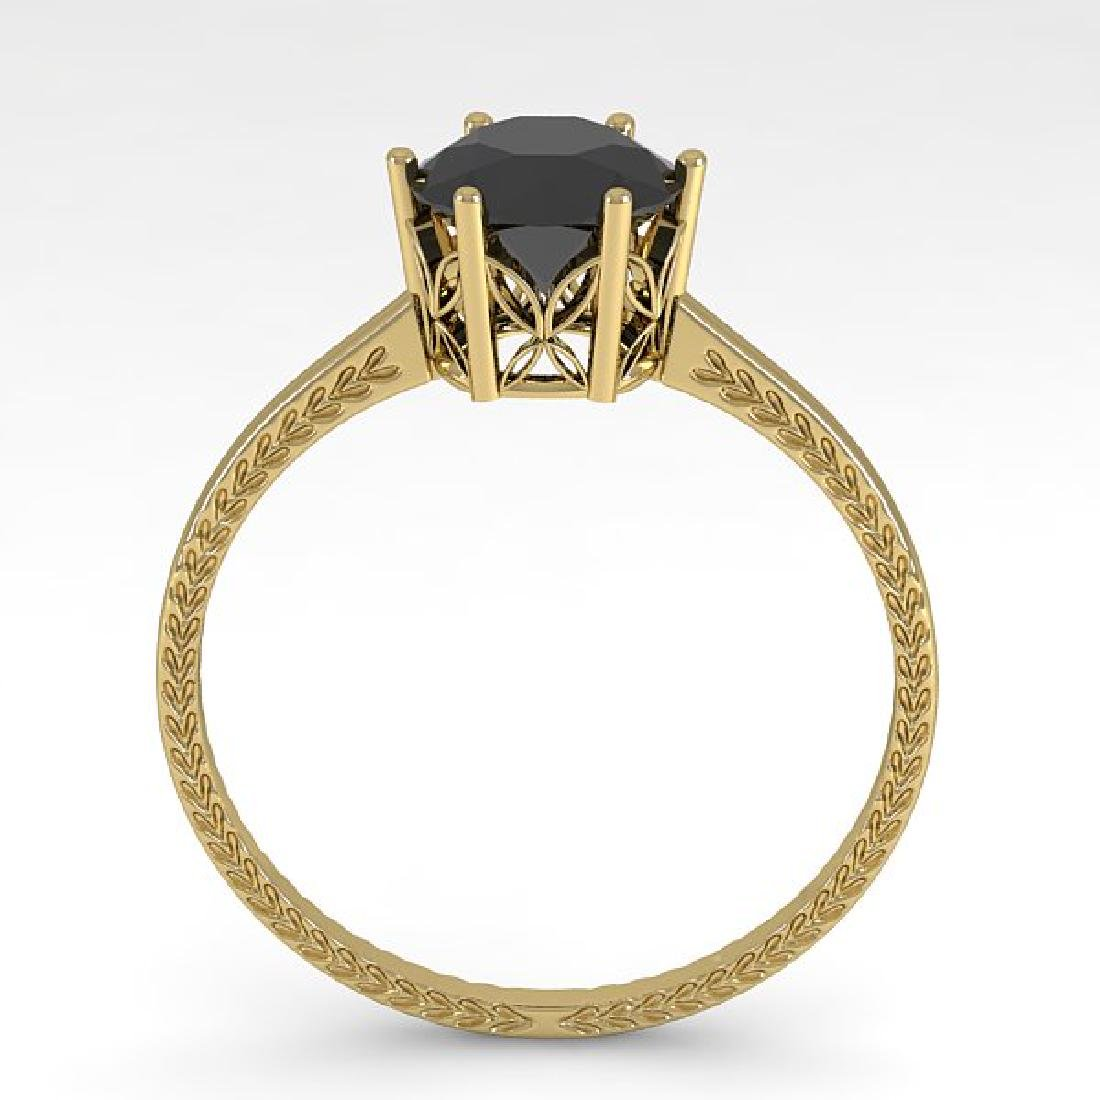 1.0 CTW Black Diamond Art Deco Ring 14K Yellow Gold - 3